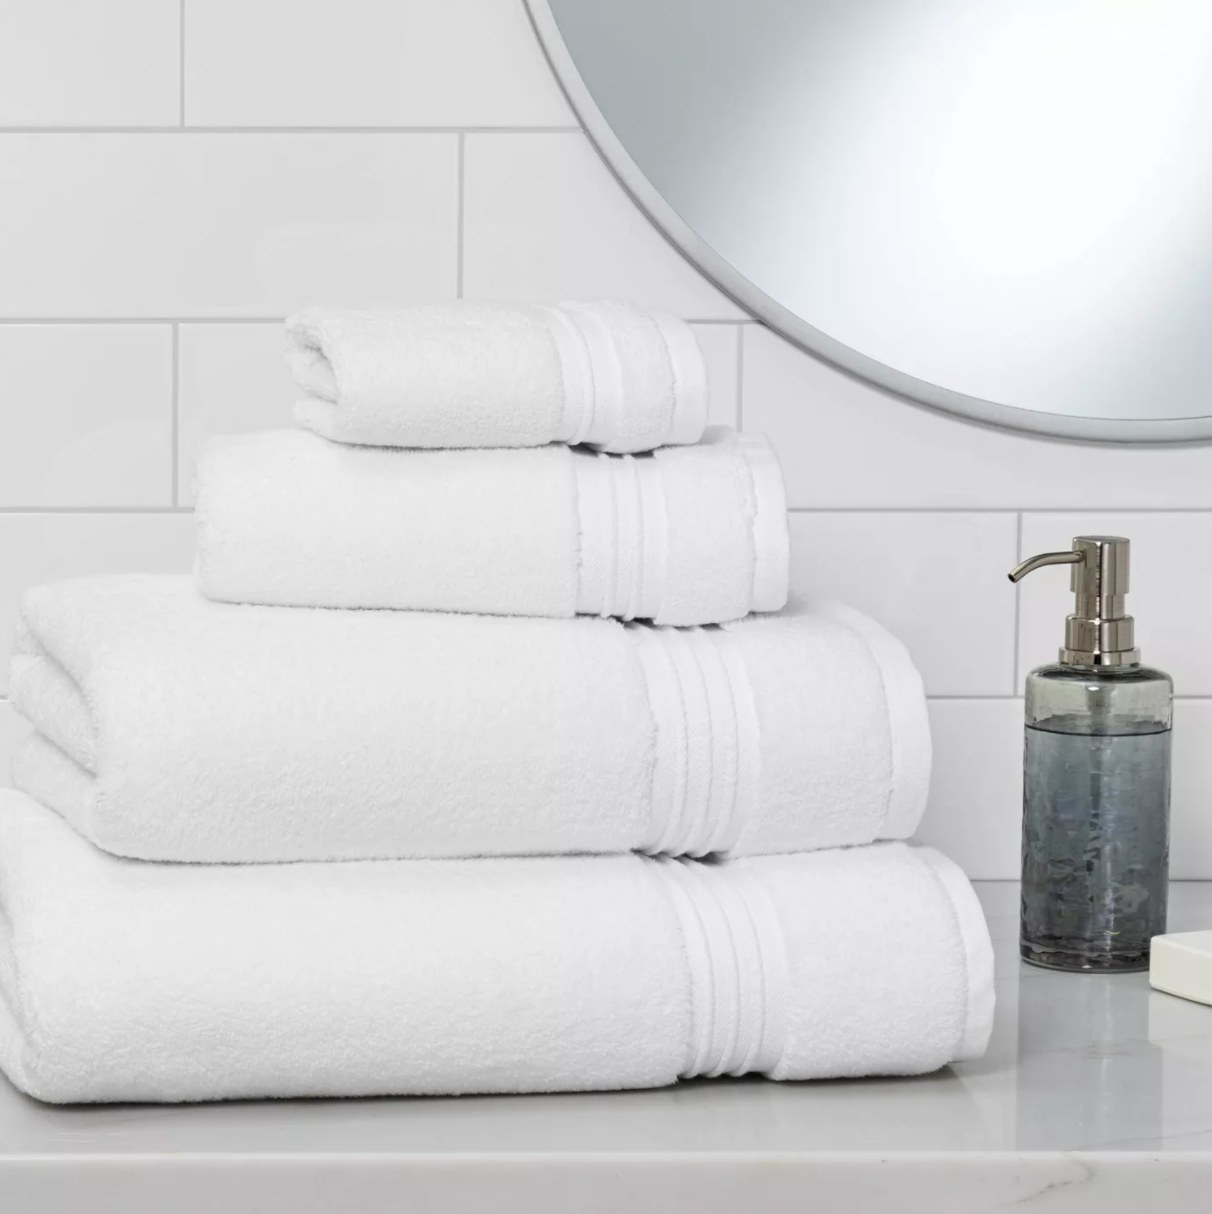 The spa bath towel in white